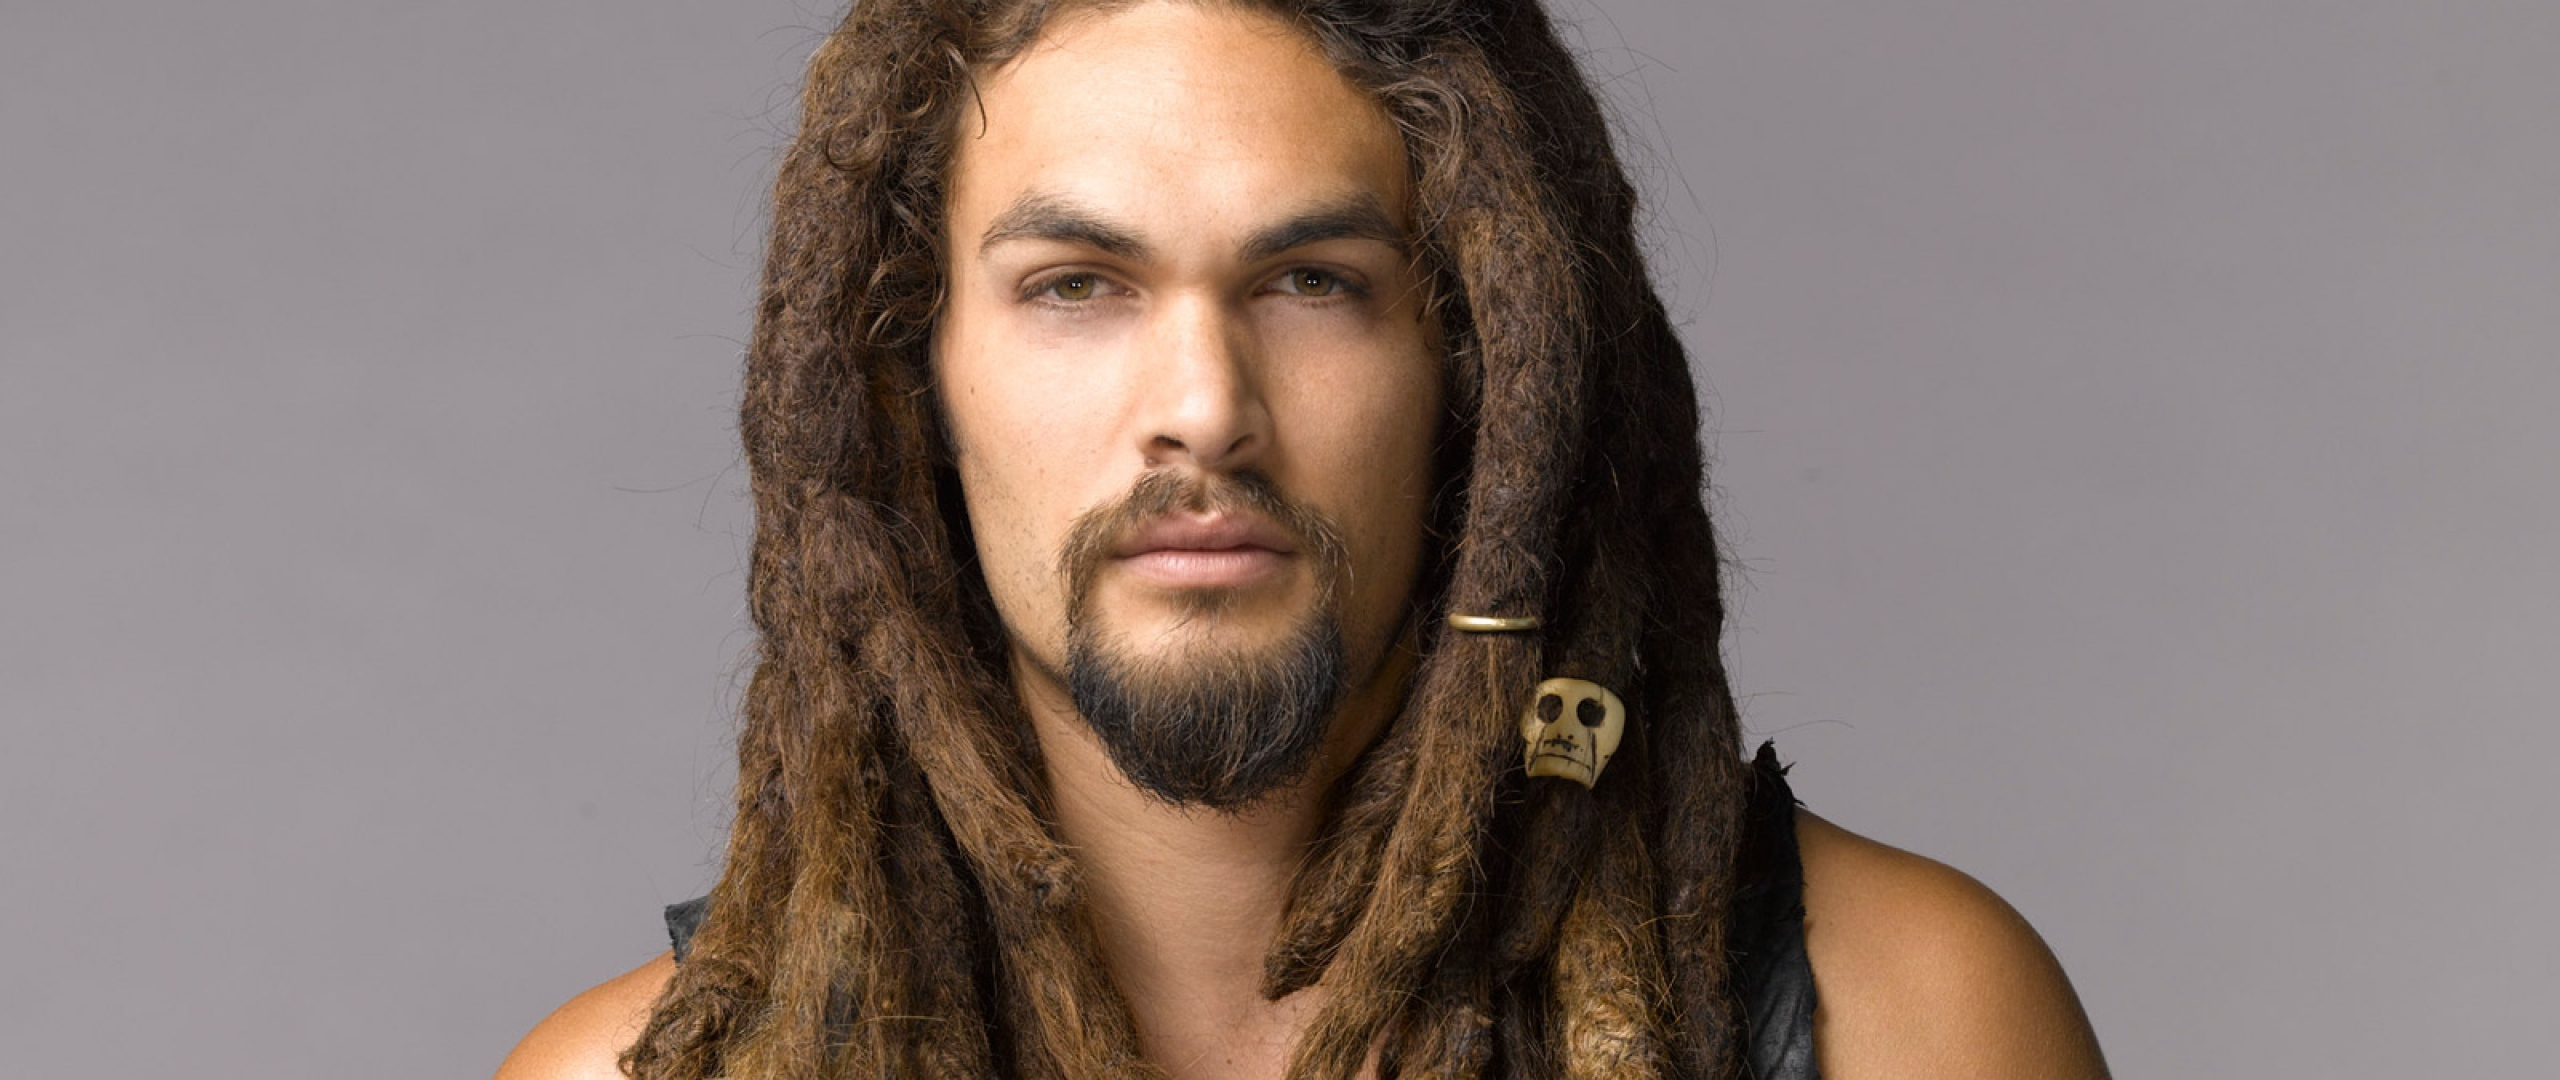 Jason Momoa Wallpapers Images Photos Pictures Backgrounds